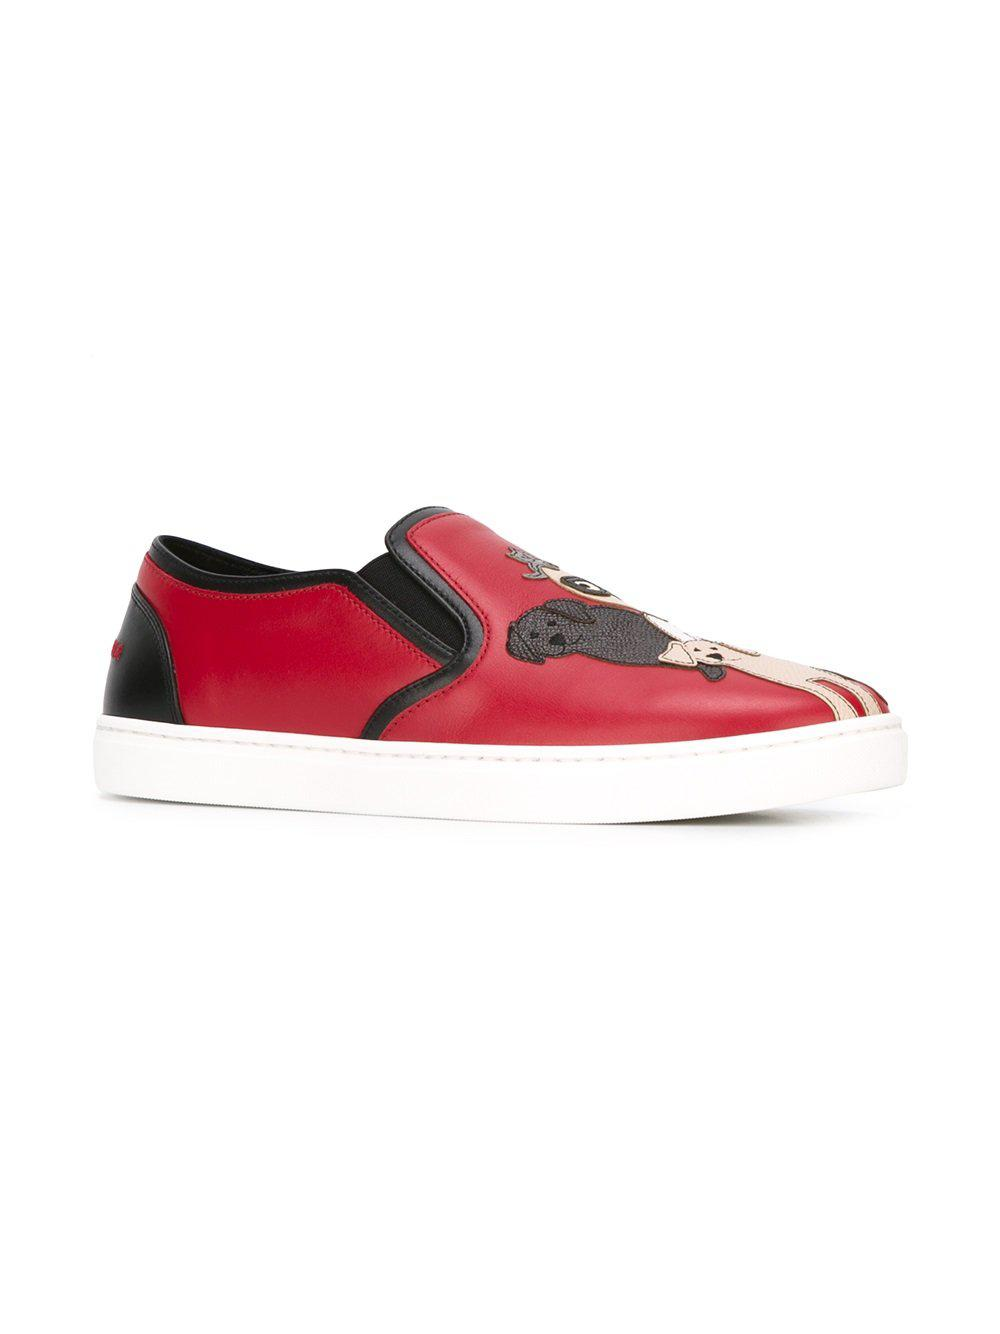 Dolce & Gabbana Woman Appliquéd Leather Sneakers Claret in Red